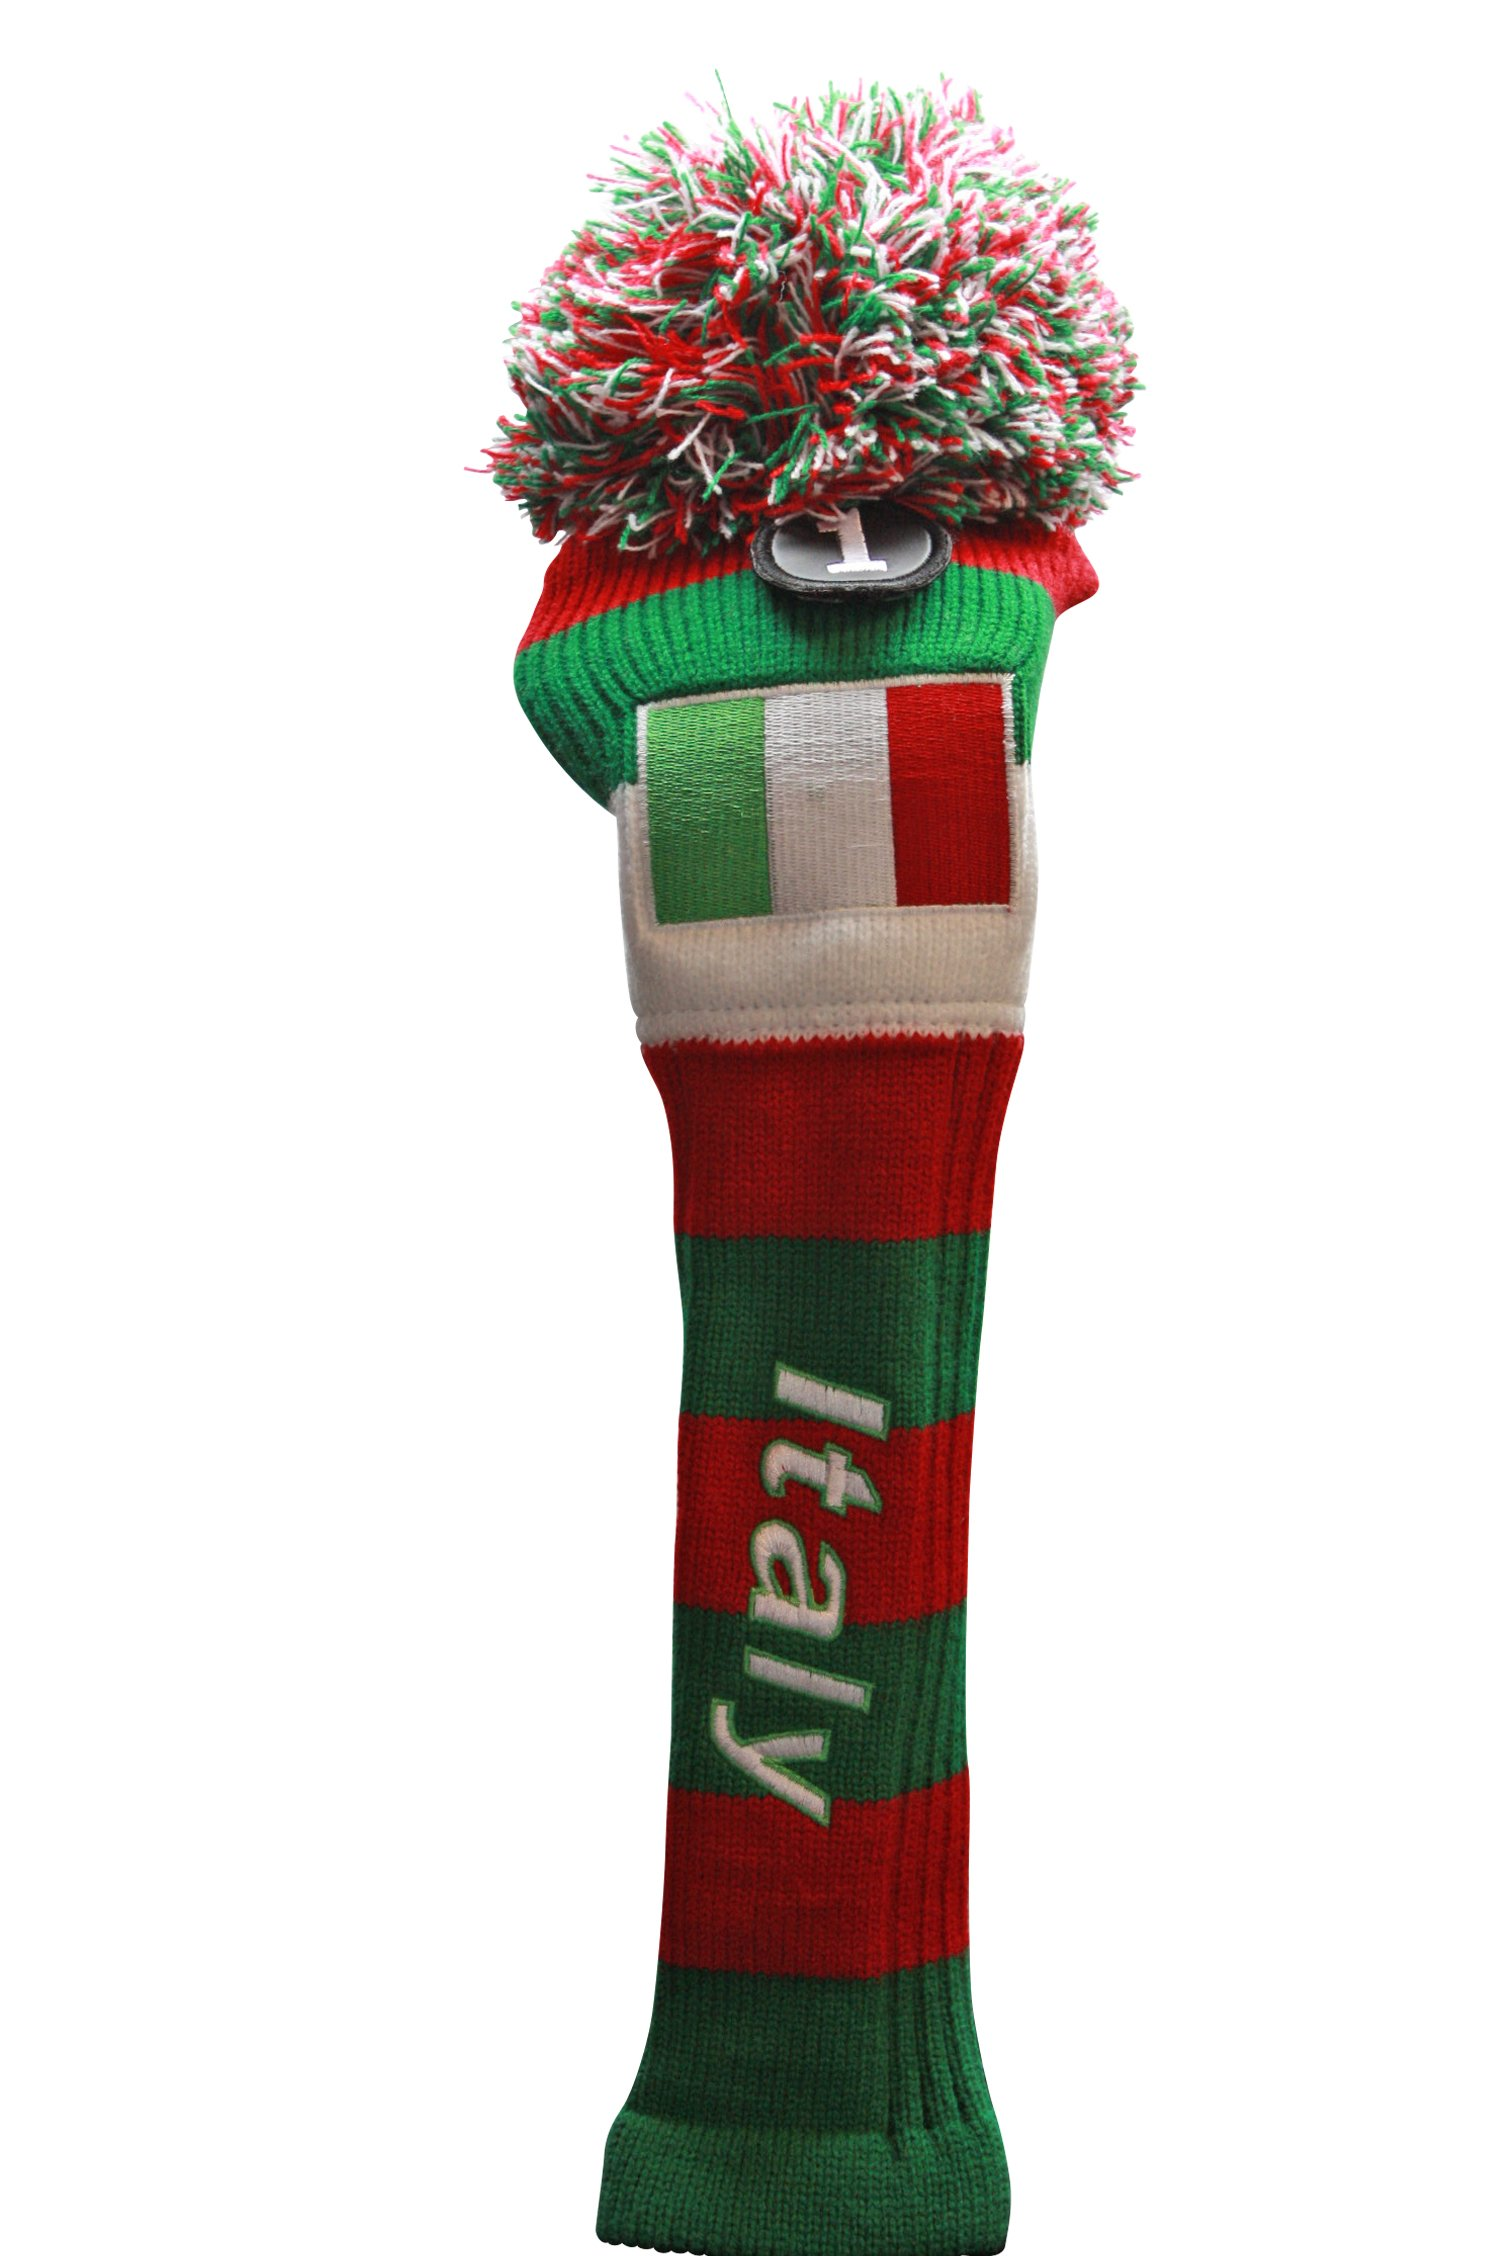 Majek Italy Driver Golf Club Head Cover #1 Italian Drivers Headcover Red White Green Pom Pom Retro Knit Vintage Classic Throwback Style Head Covers